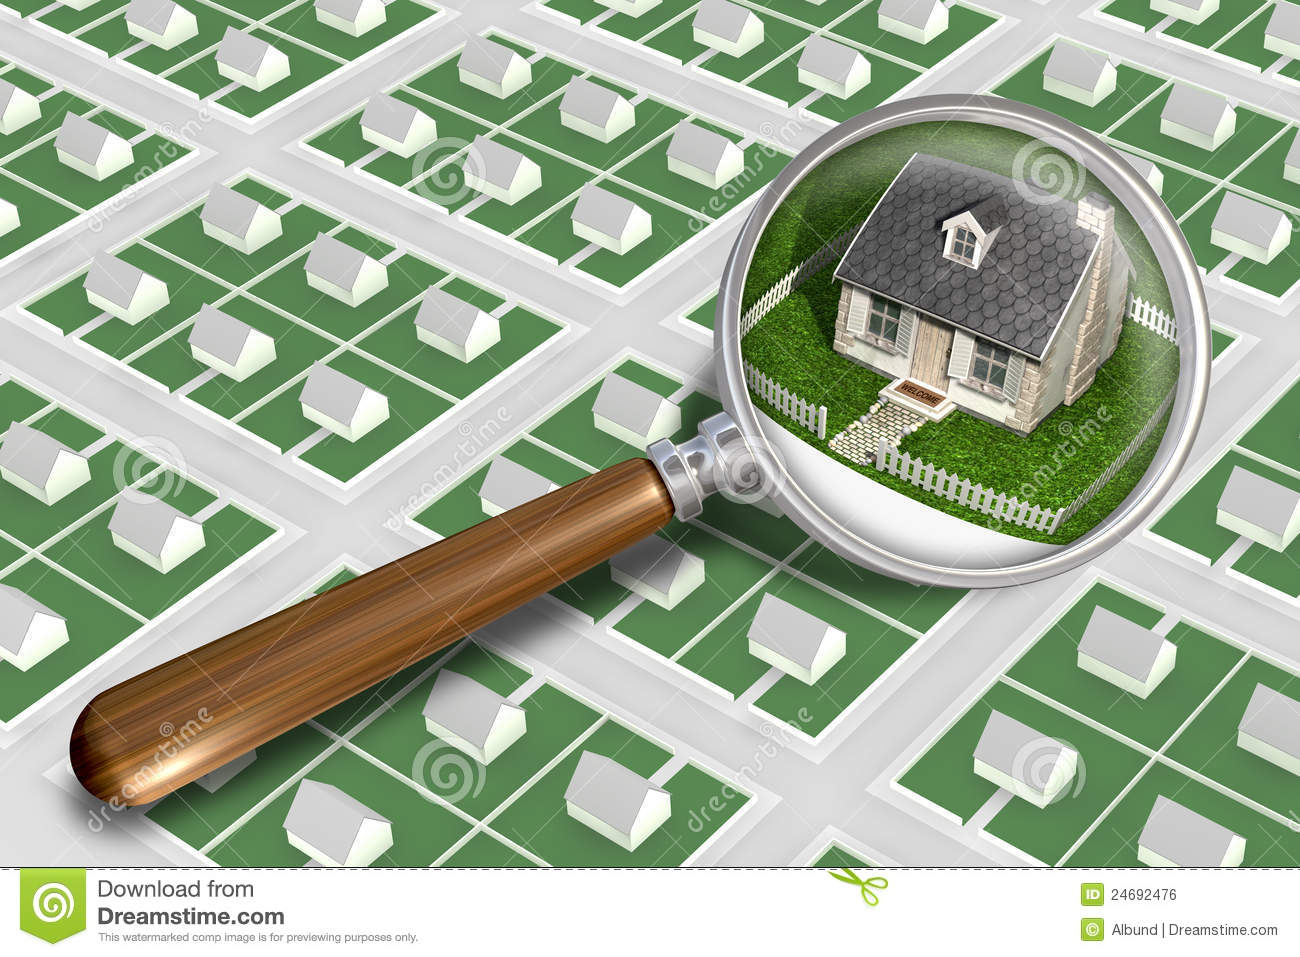 Find the perfect house royalty free stock image image for Find the perfect home